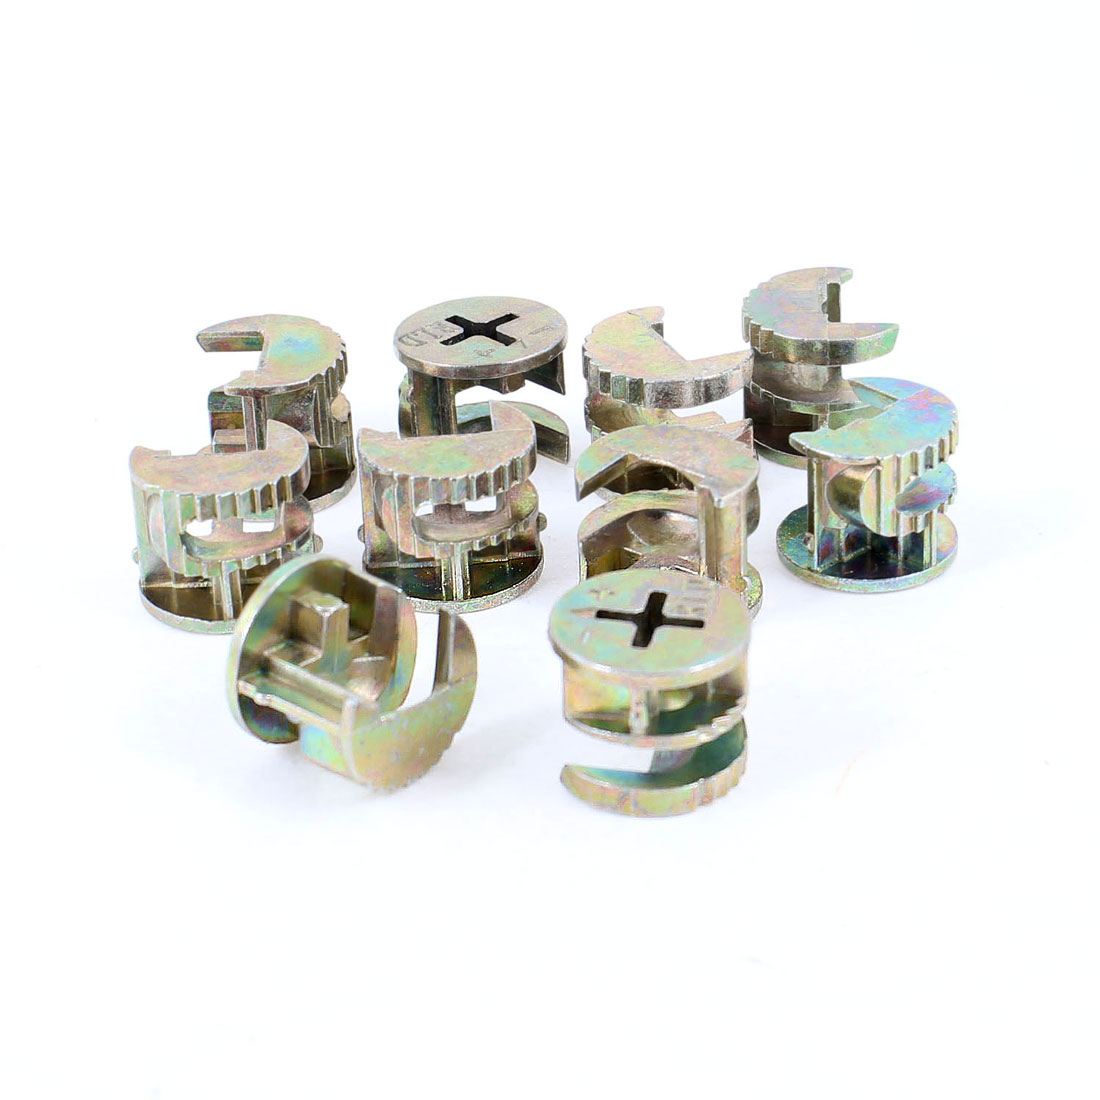 "10 Pcs Cross Head 0.6"" Diameter Copper Tone Metal Cabinet Connect Cam Fittings"